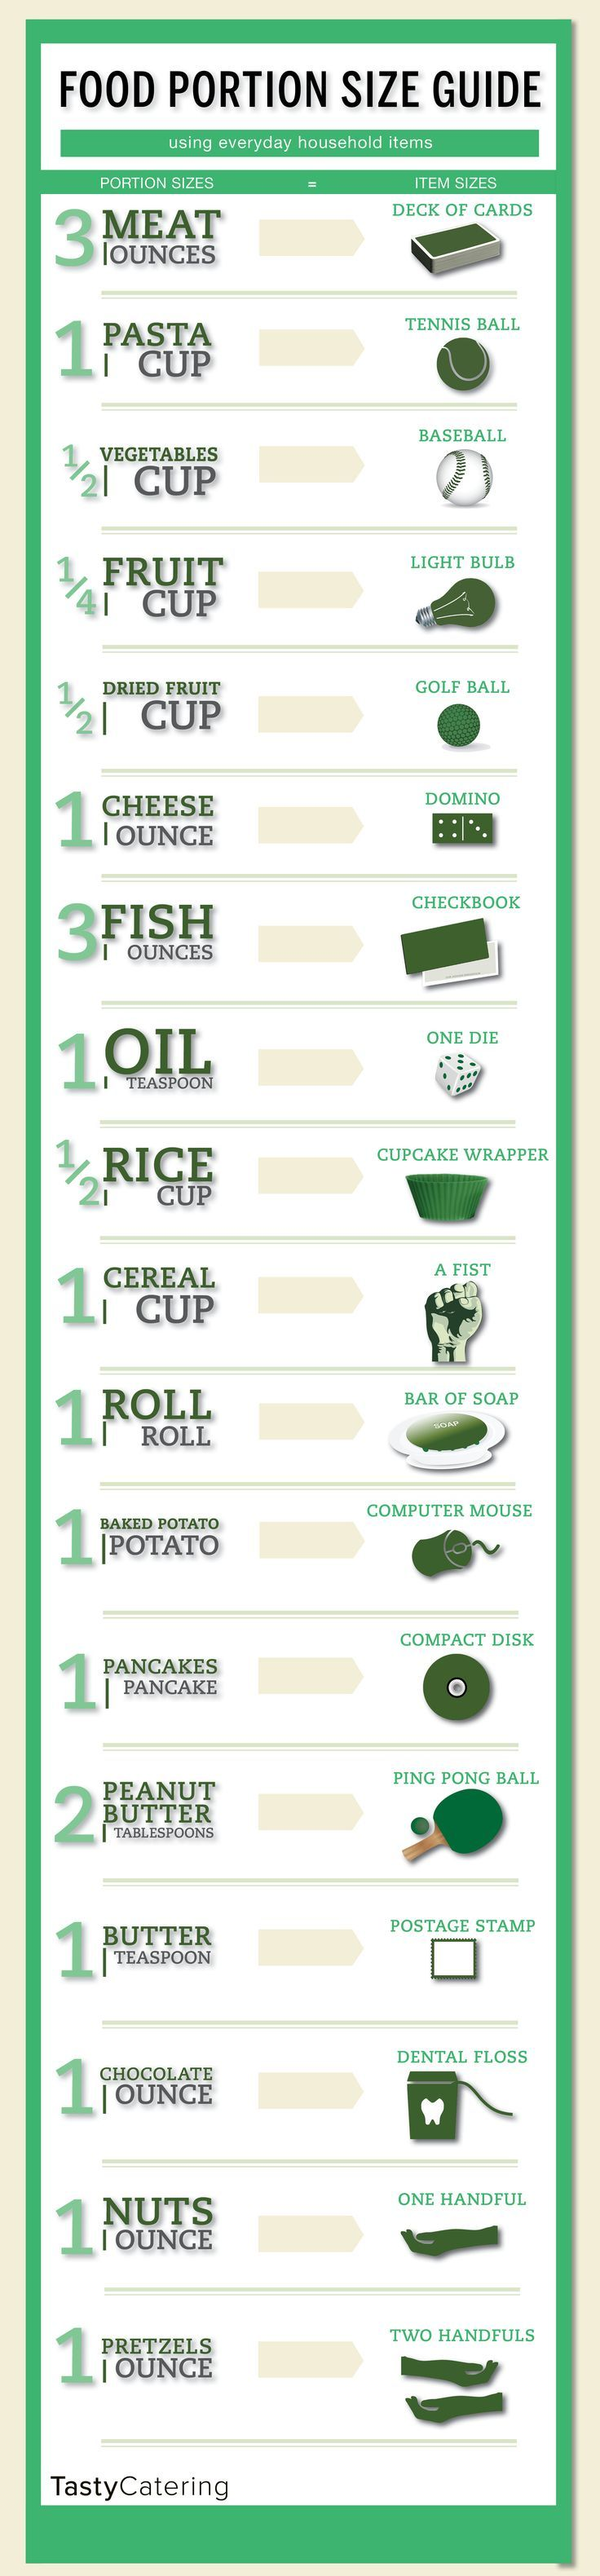 Food Portion Size Guide Using Everyday Household Items #health